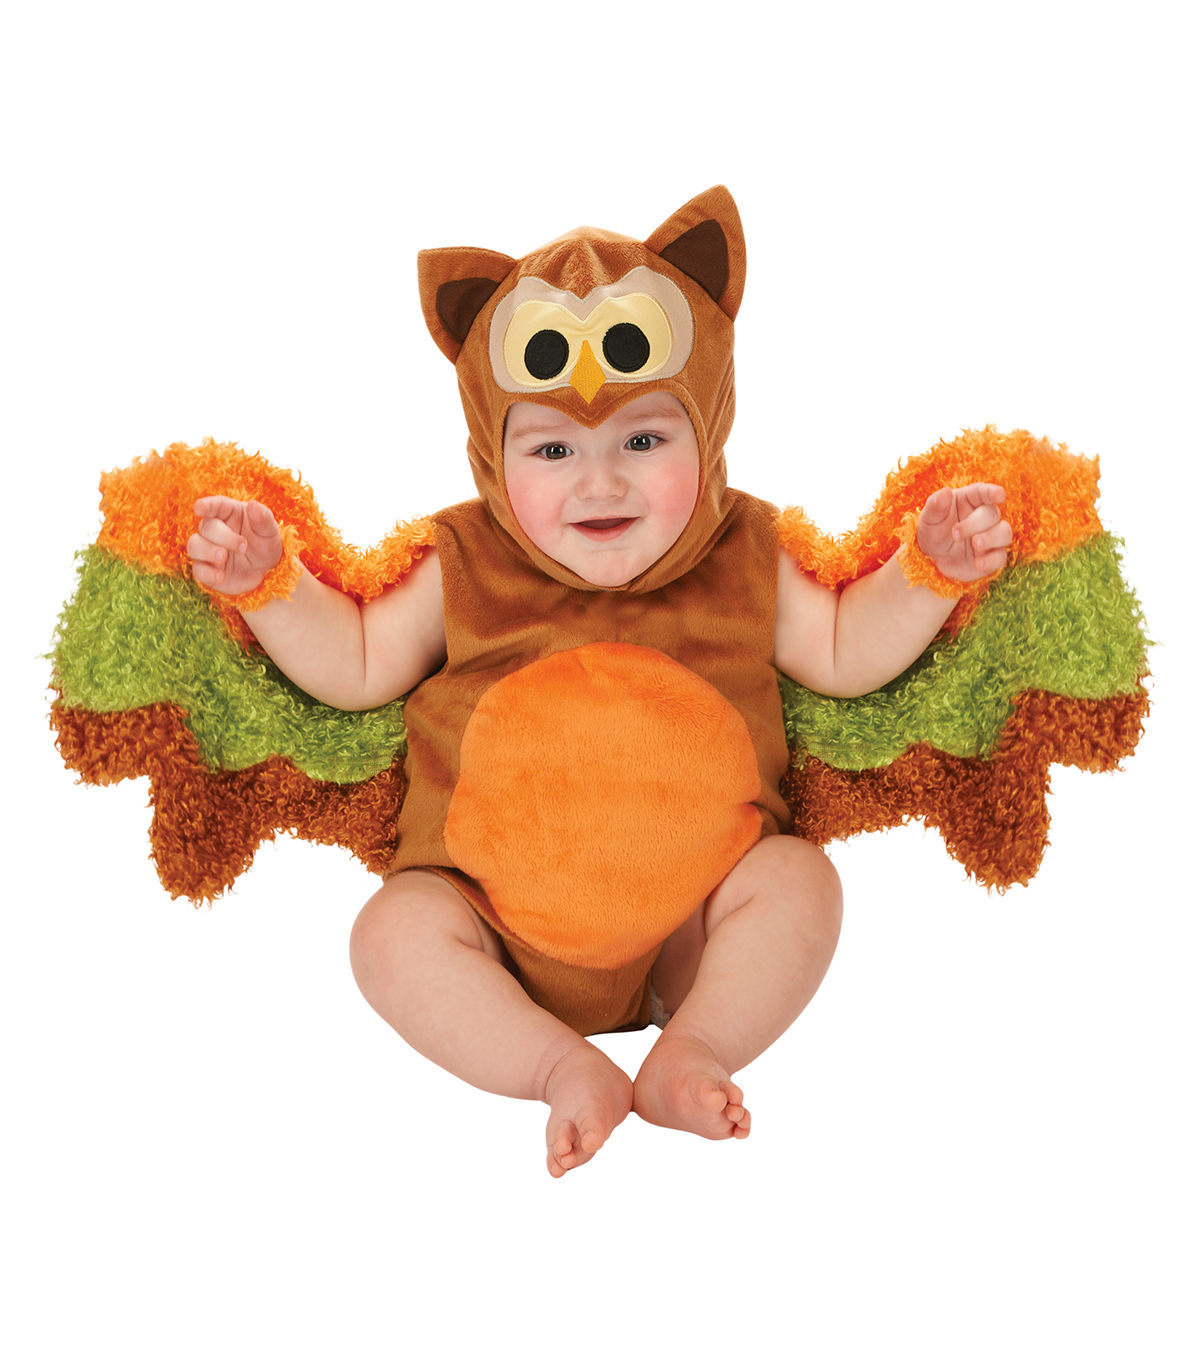 Maker\u0027s Halloween 12-18 months Infant Owl Romper Costume-Multi